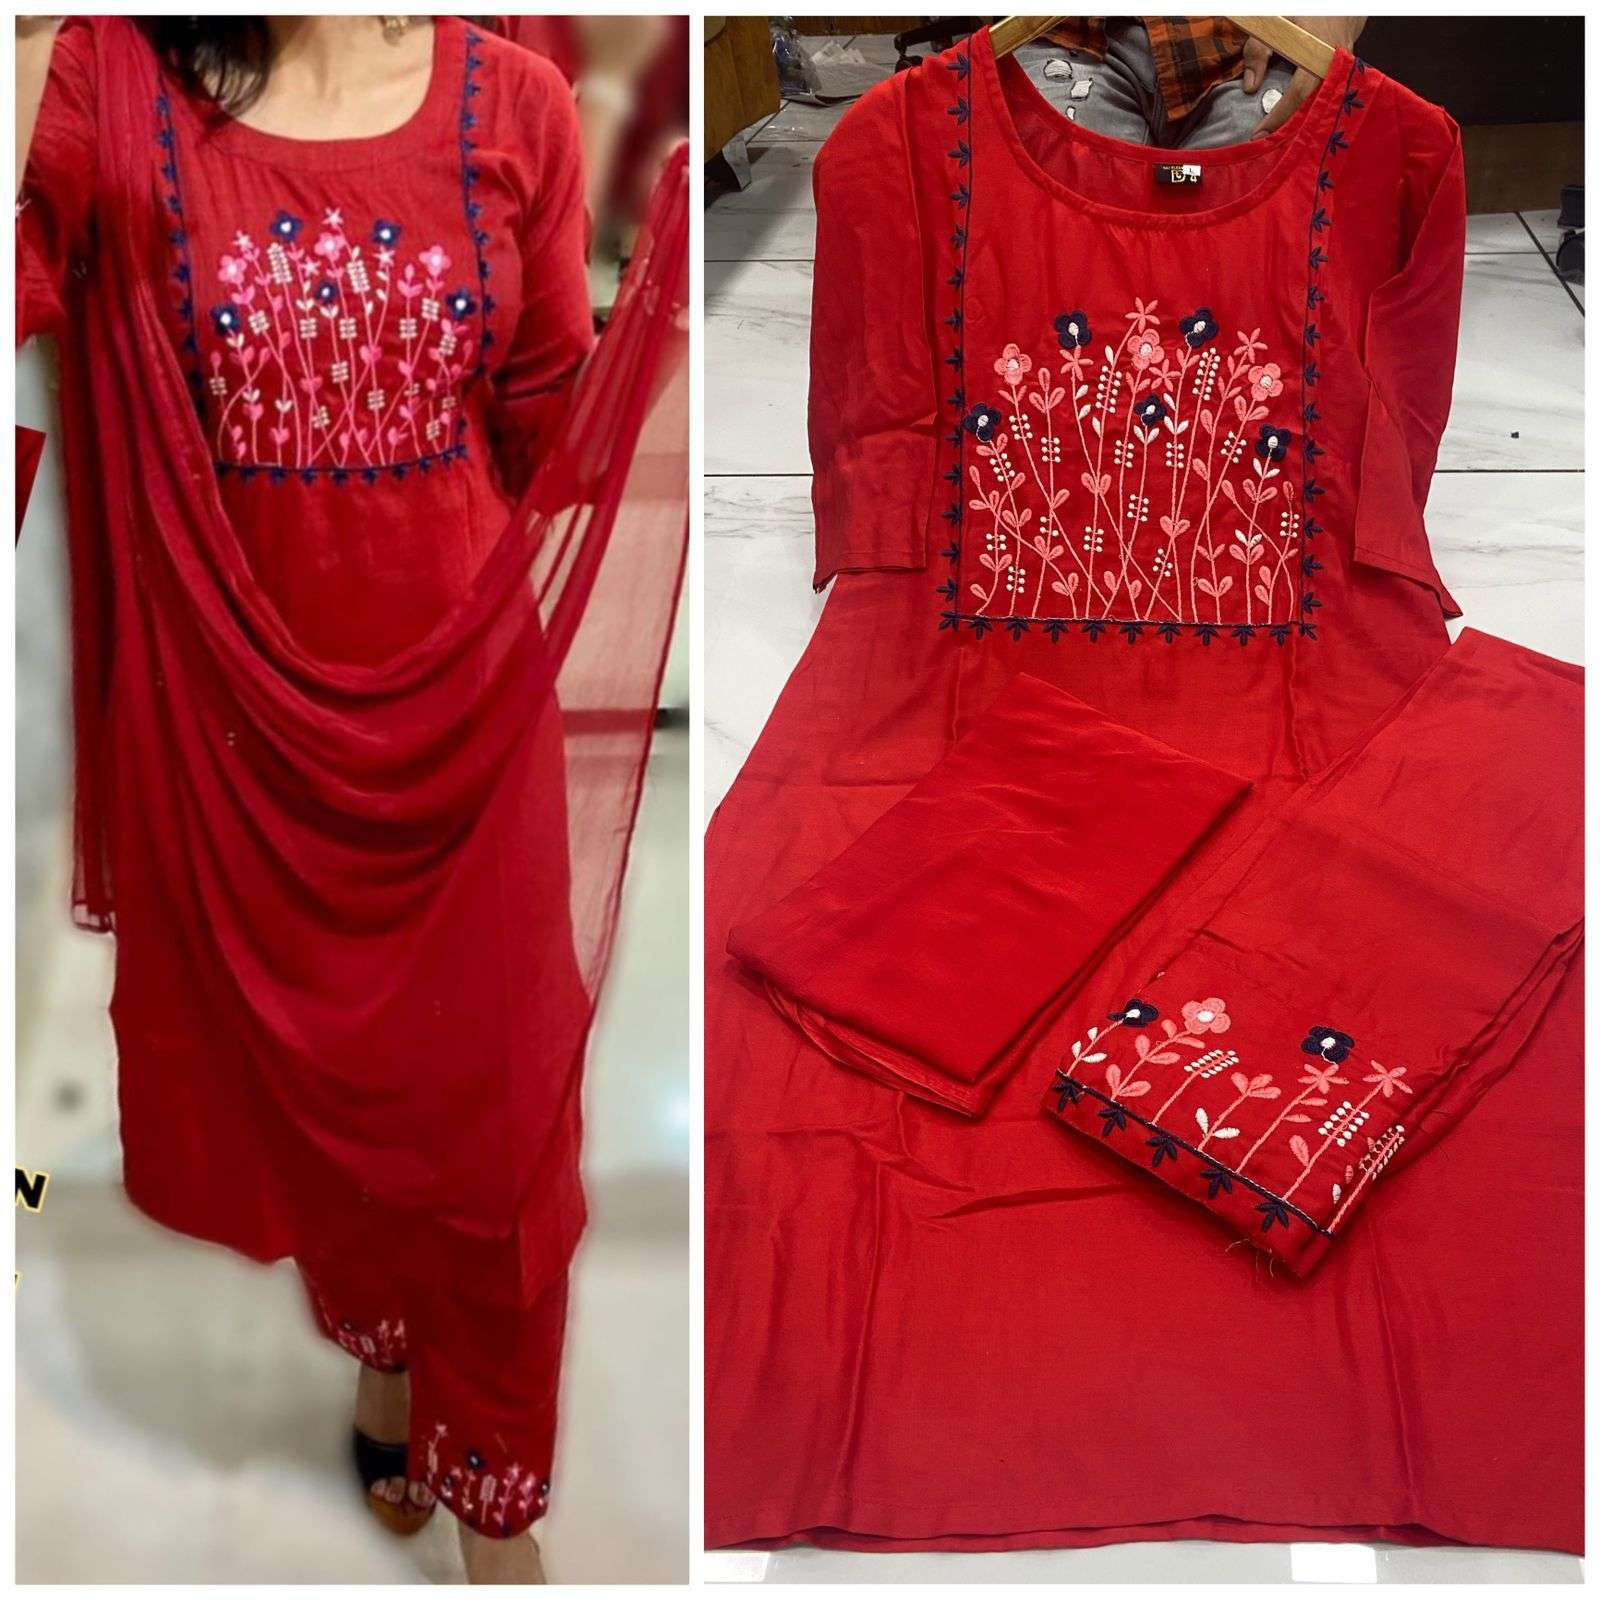 Designer Rayon With Embroidery Work Kurti With Bottom Dupatta Collection